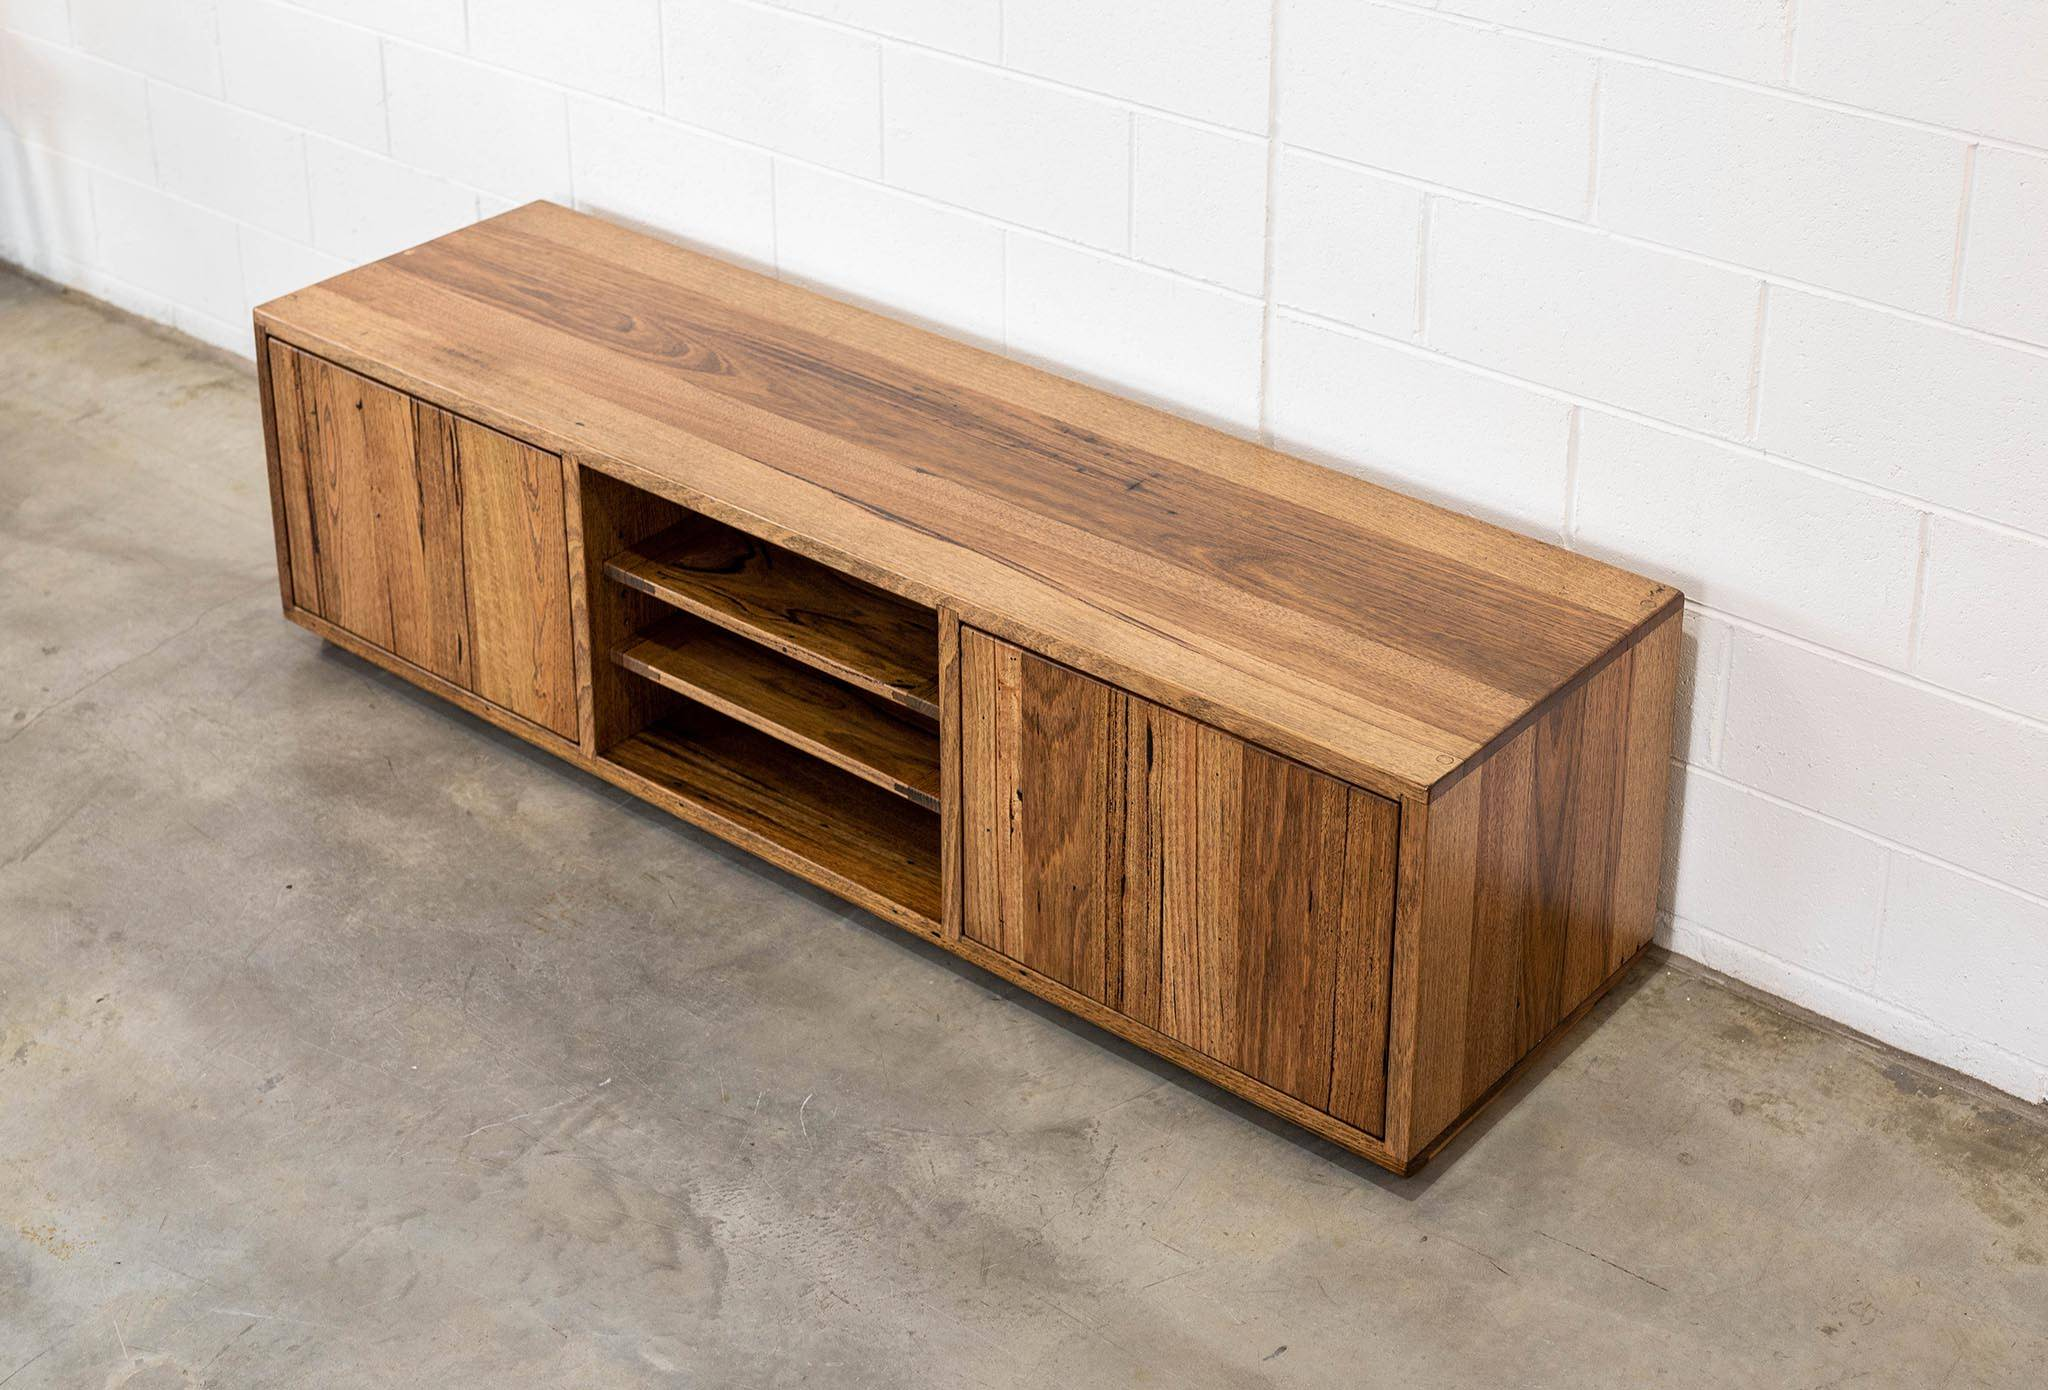 Recycled Timber Entertainment Unit Stringy Bark Push open Doors and Adjustable Shelves